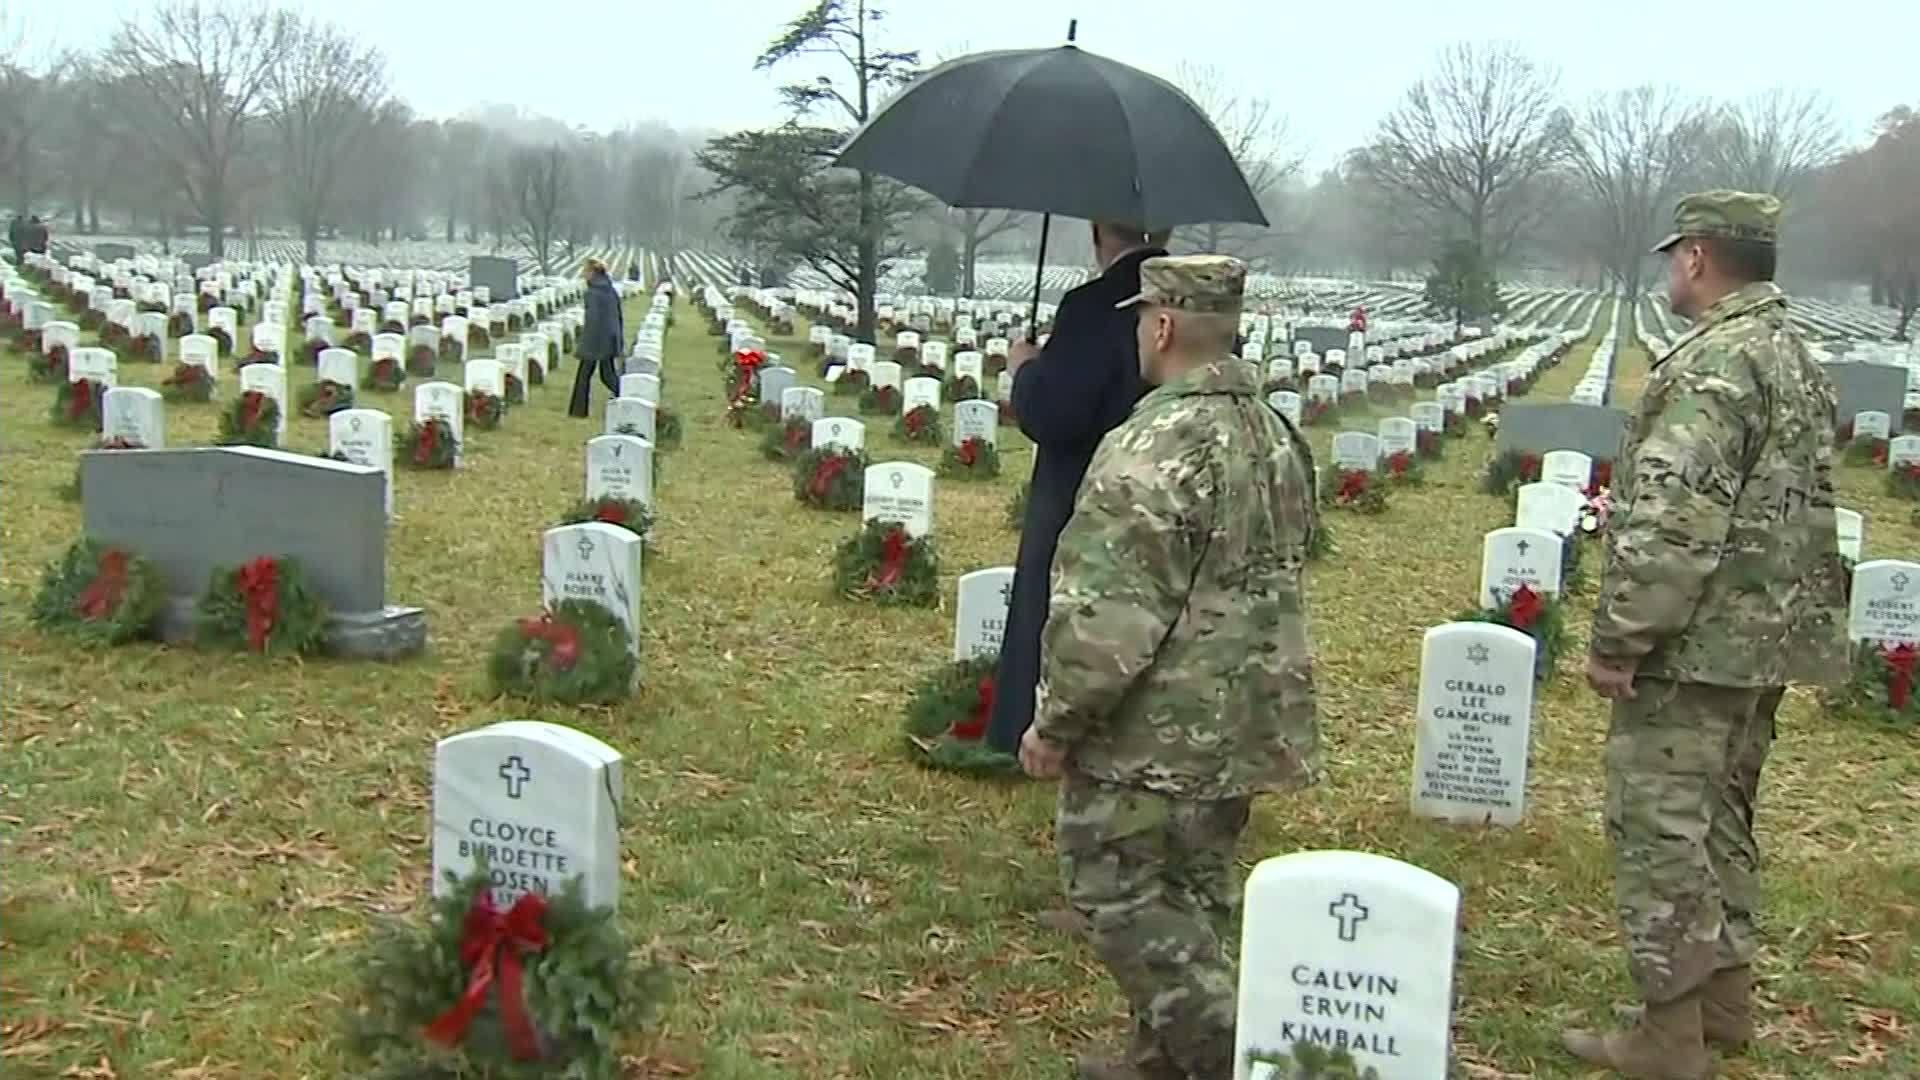 President Trump at Arlington National Cemetery to lay wreaths